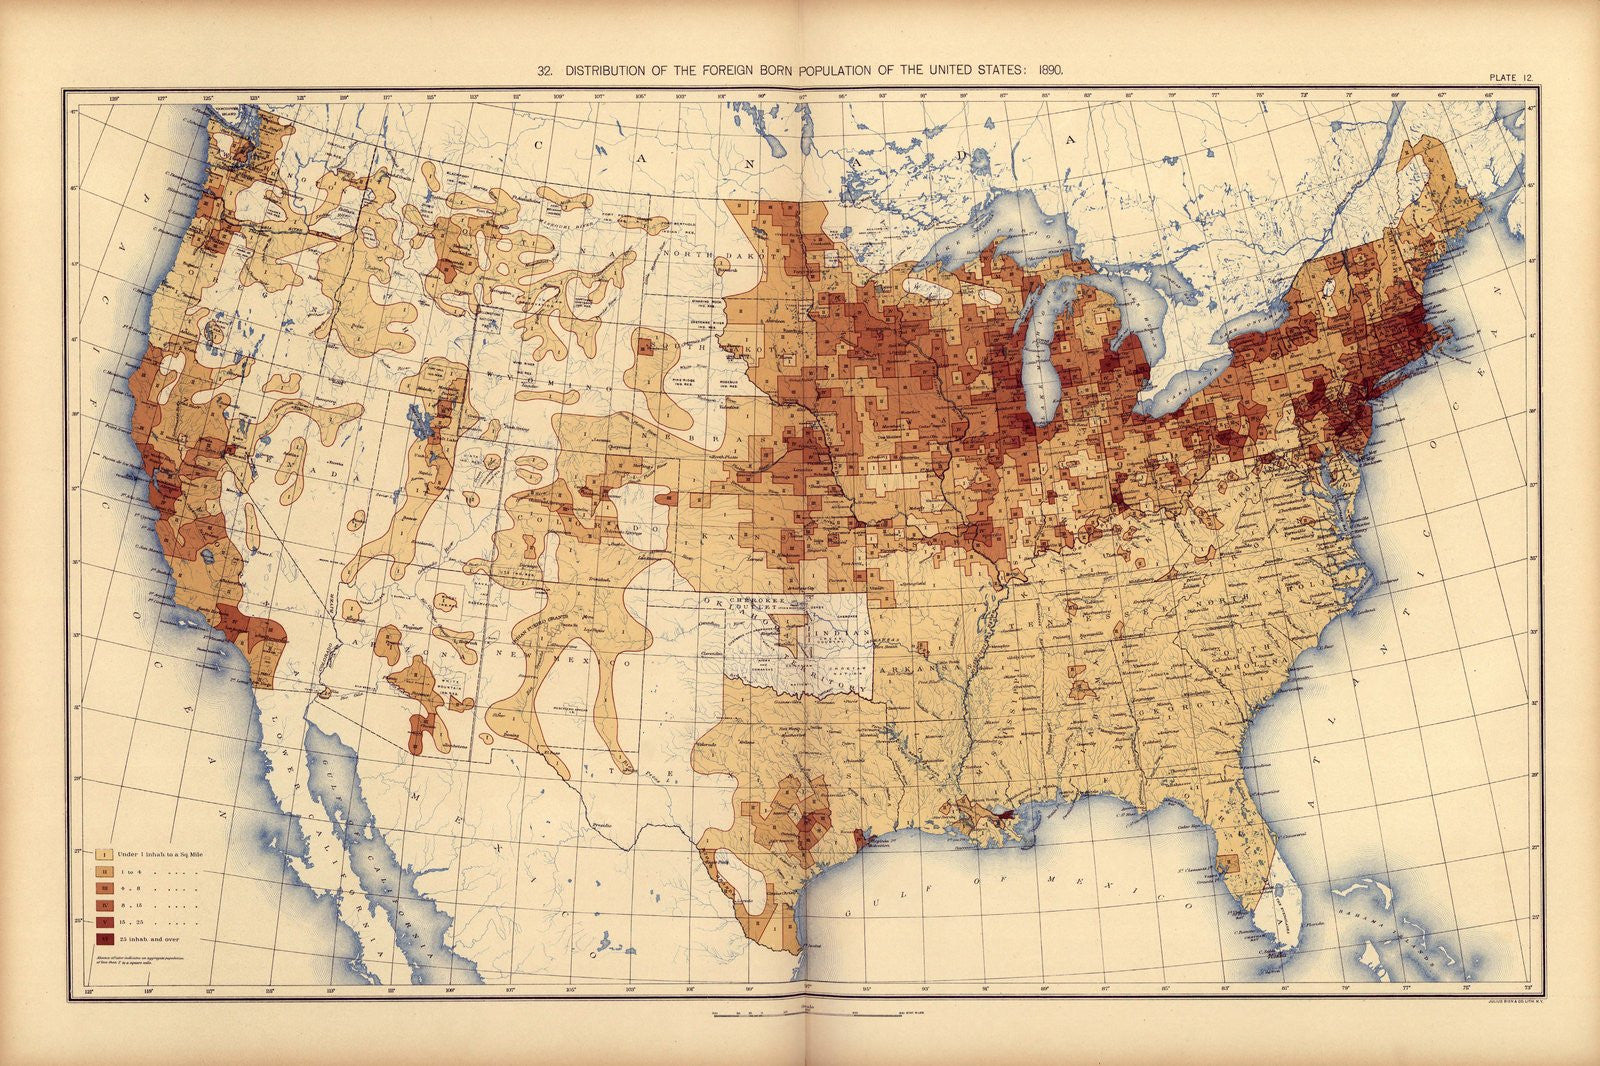 Prints Of Maps Tagged Race And Ethnicity On Vintage Visualizations - Us population density map 1870s